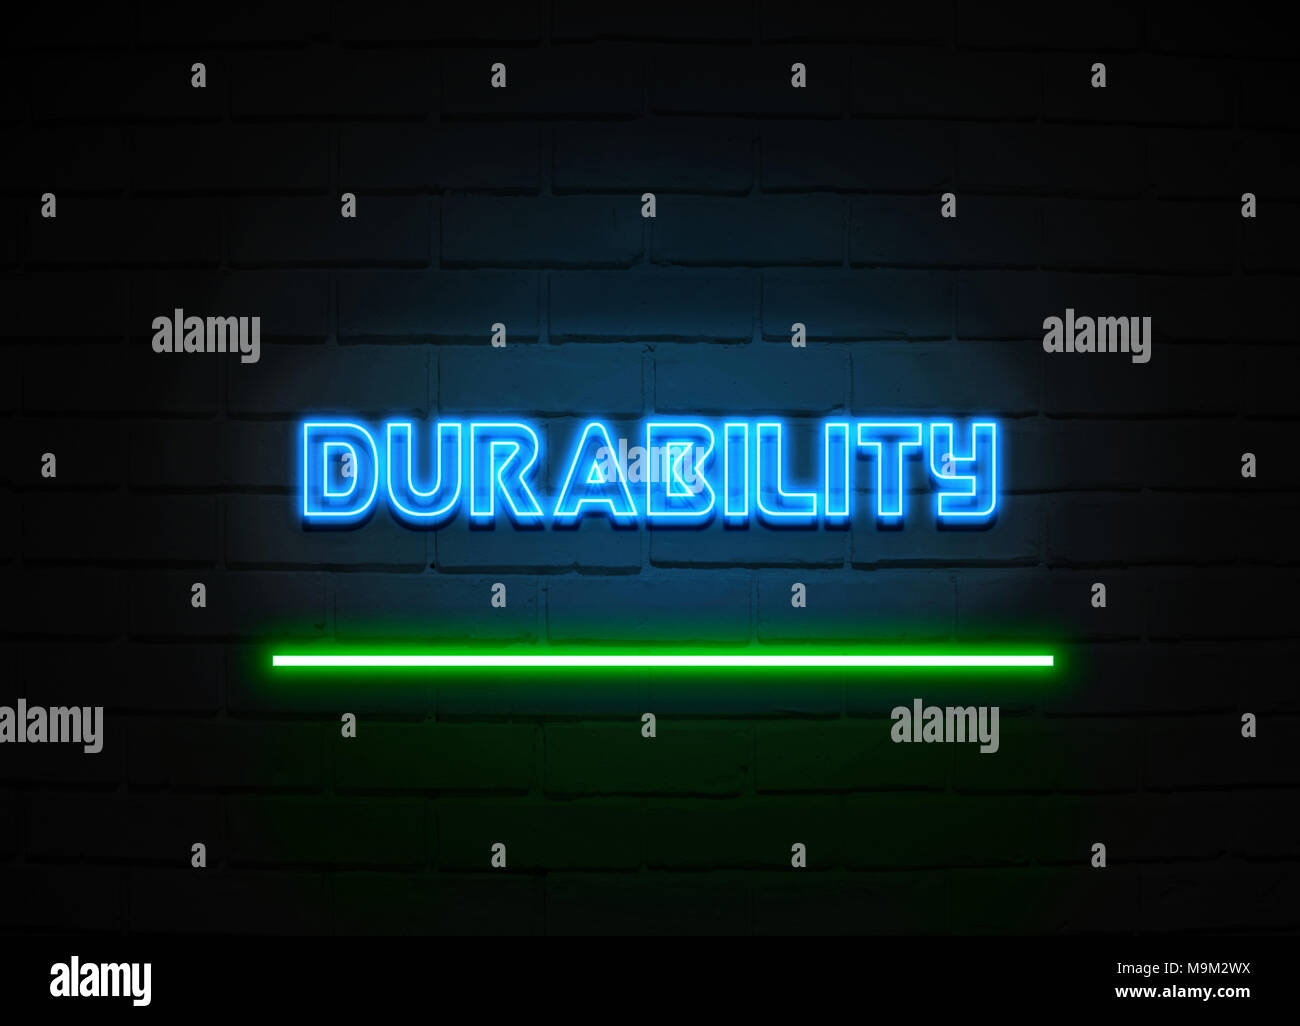 Durability neon sign - Glowing Neon Sign on brickwall wall - 3D rendered royalty free stock illustration. - Stock Image